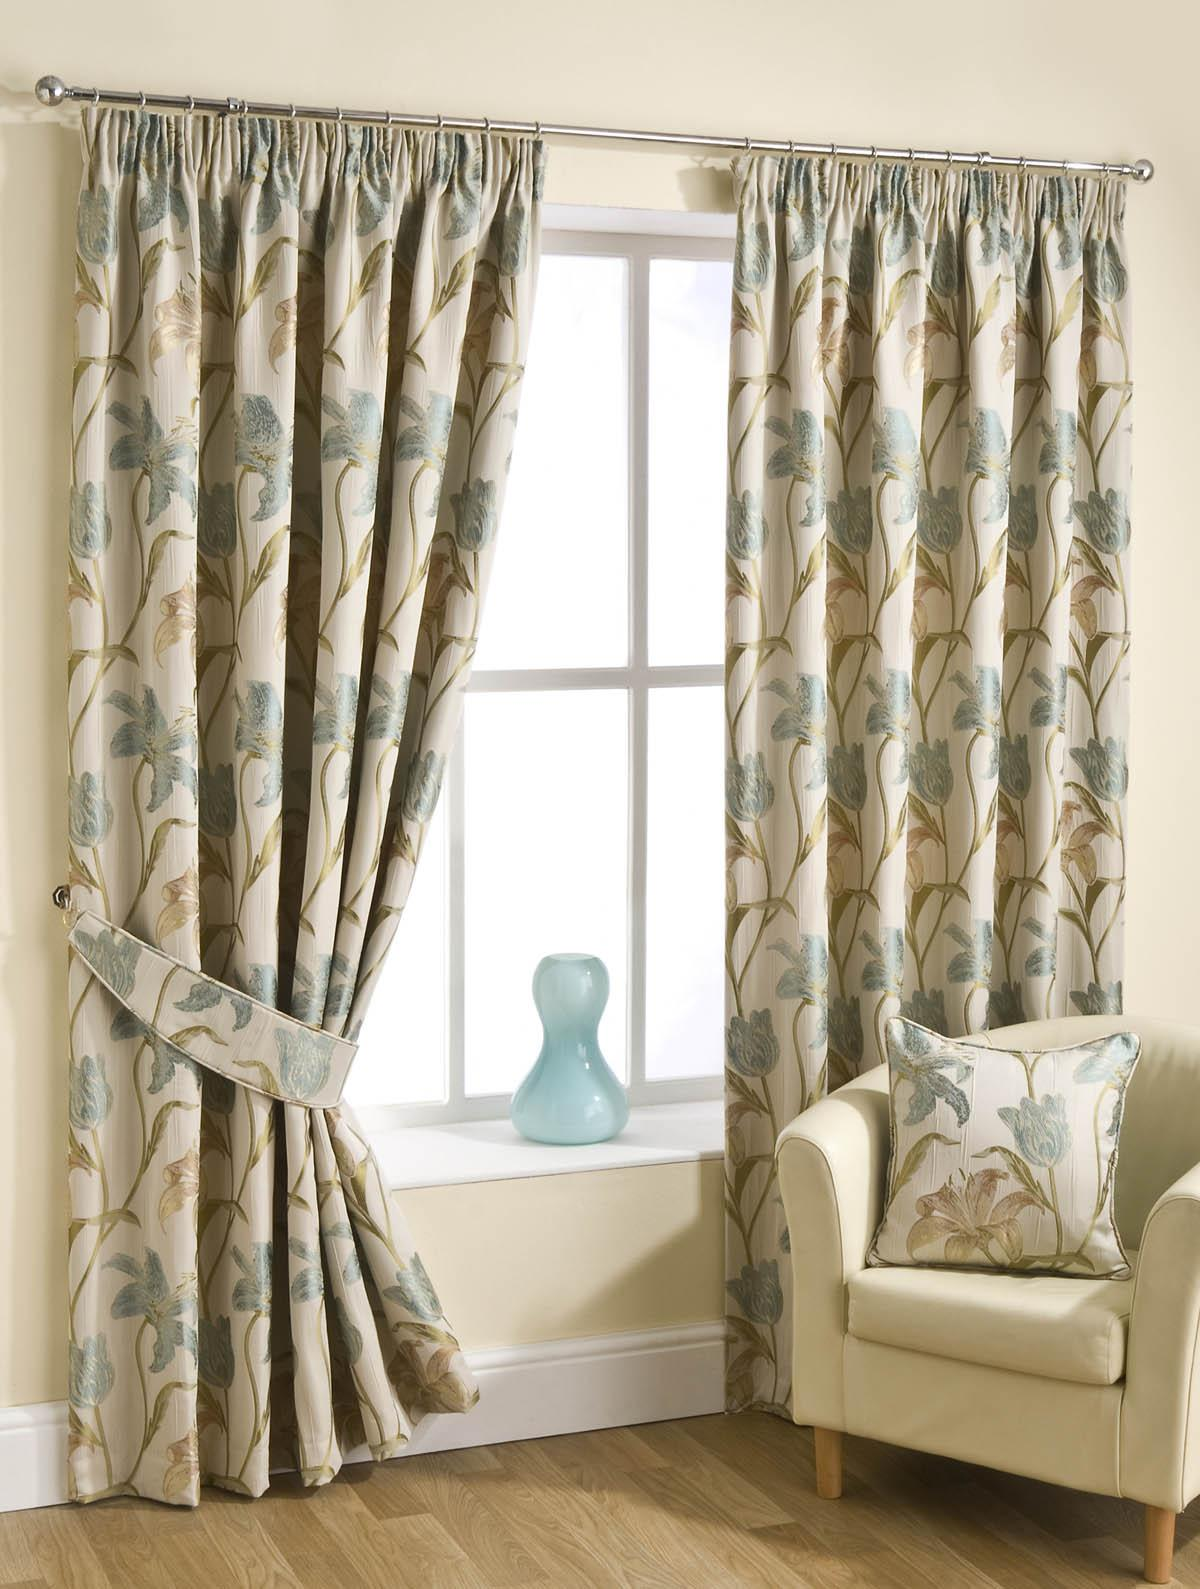 Stockists of Aqua Fragrance Ready Made Lined Curtains